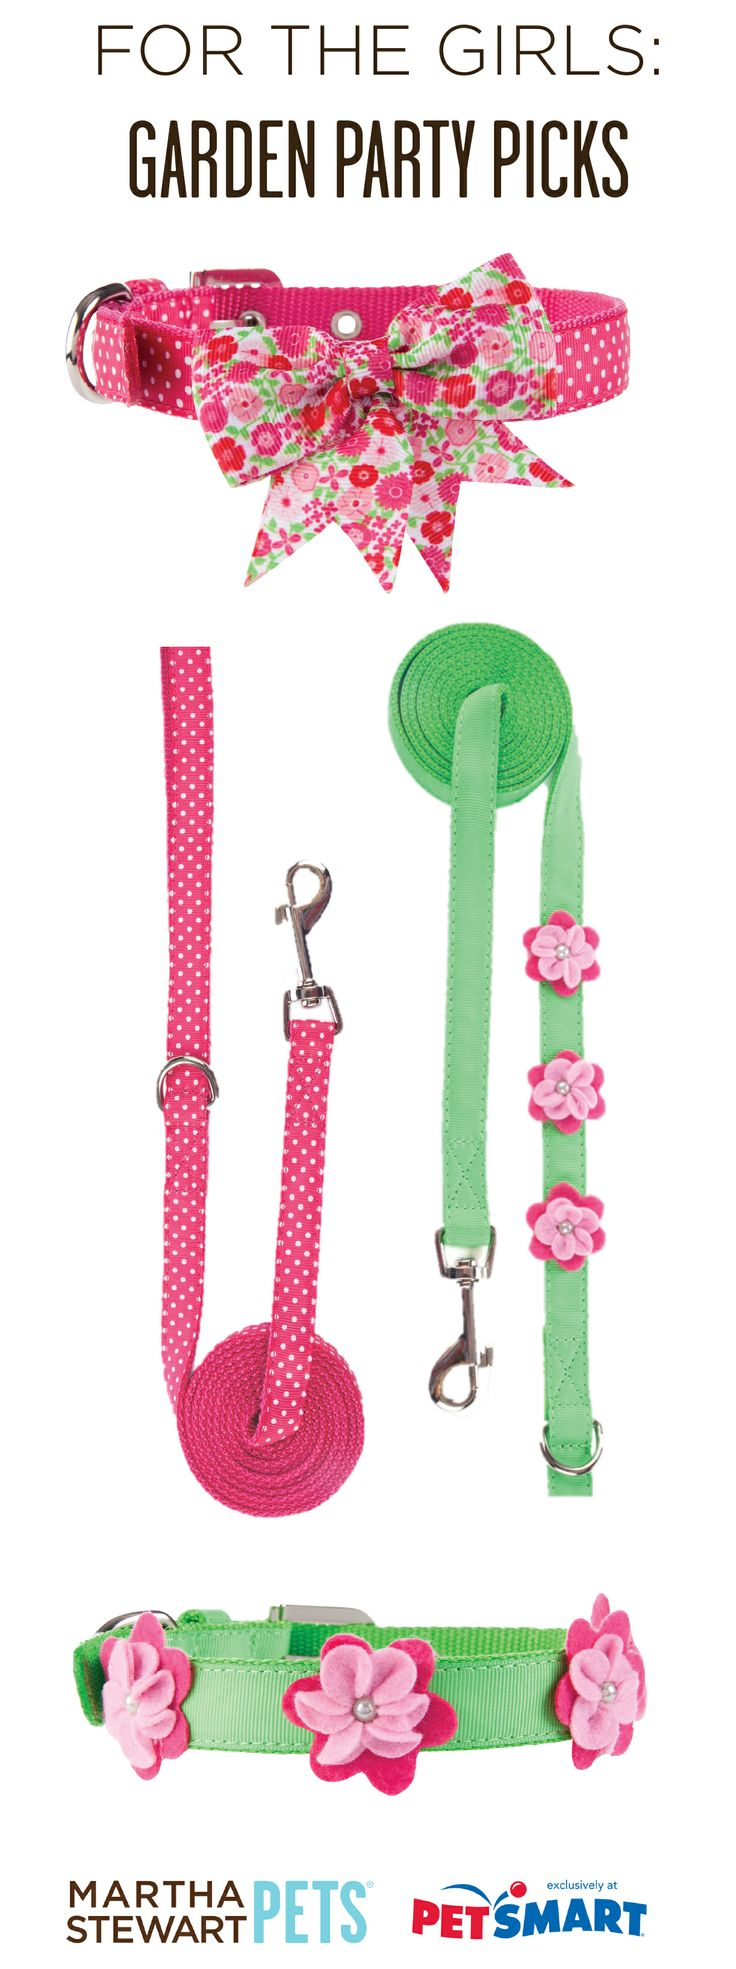 The #MarthaStewartPets Garden Party collection has the perfect mix of pink, green, dots, and bows! Only at #PetSmart.